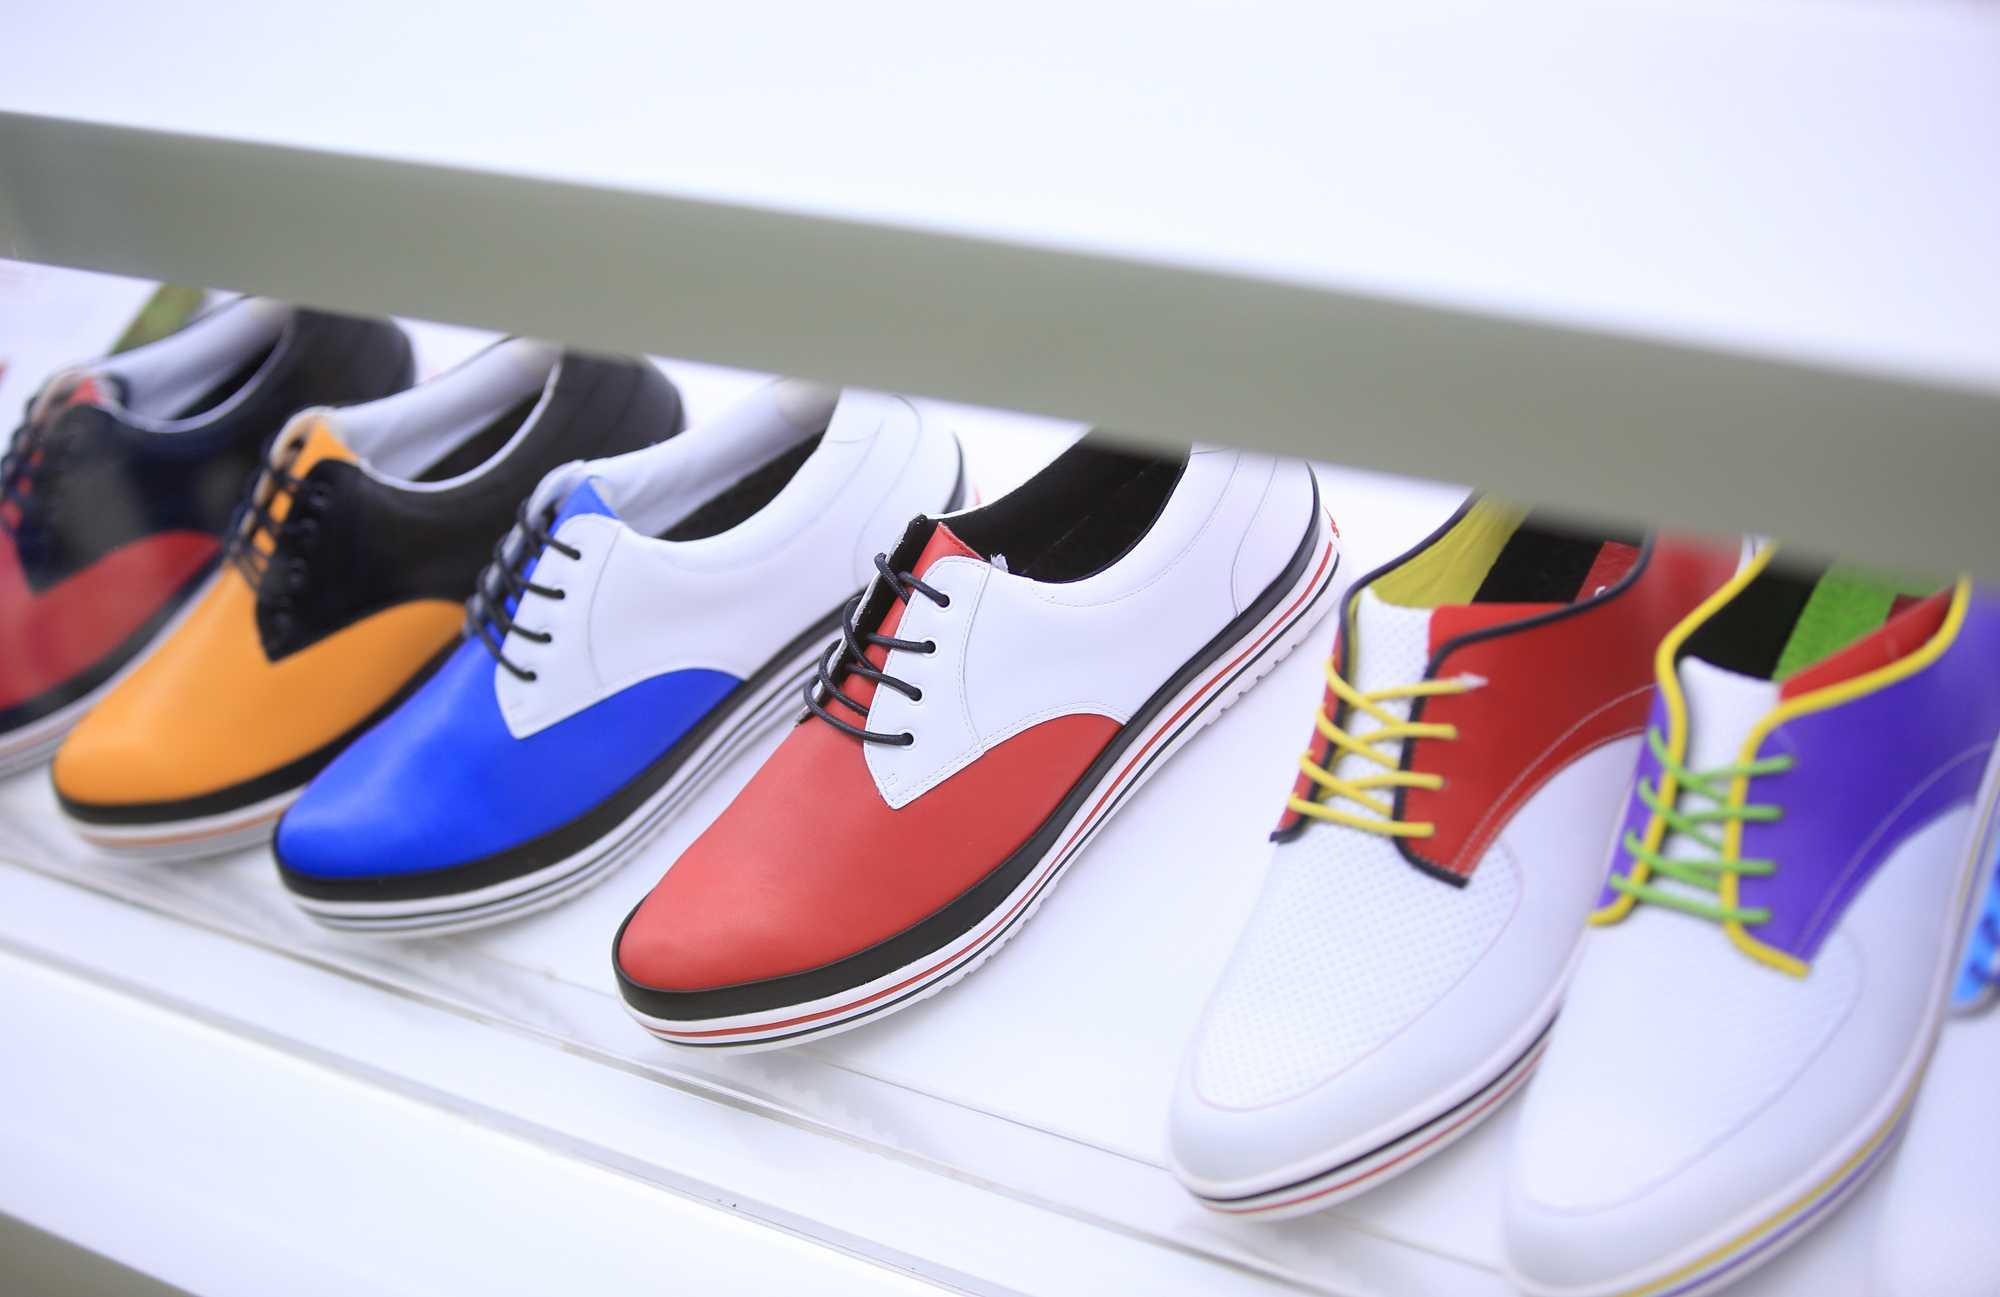 7 Reasons Why Expensive Golf Shoes Are Worth it